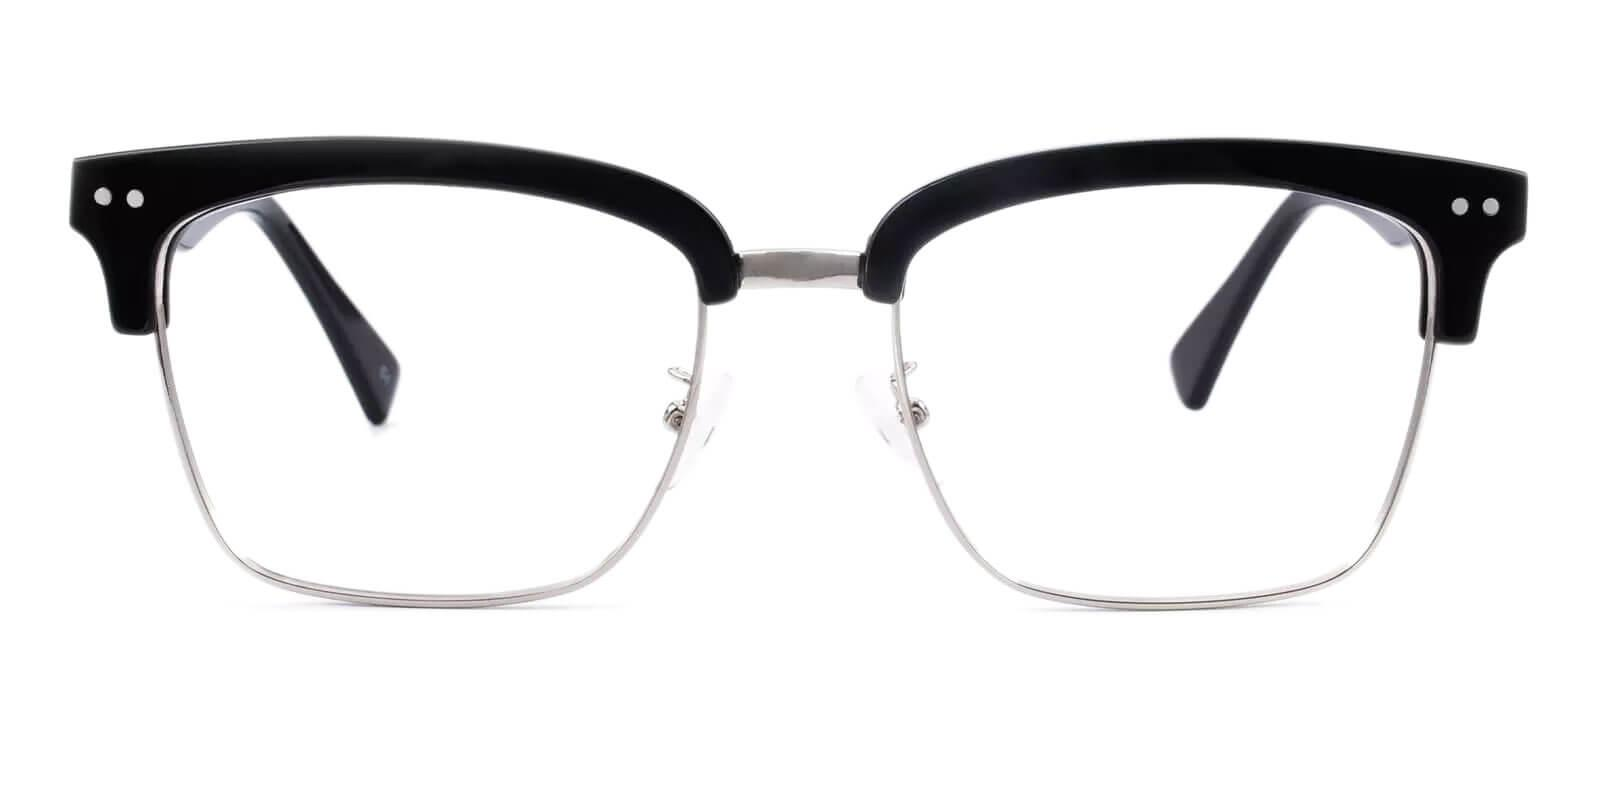 Theodosia Black Combination Eyeglasses , NosePads Frames from ABBE Glasses